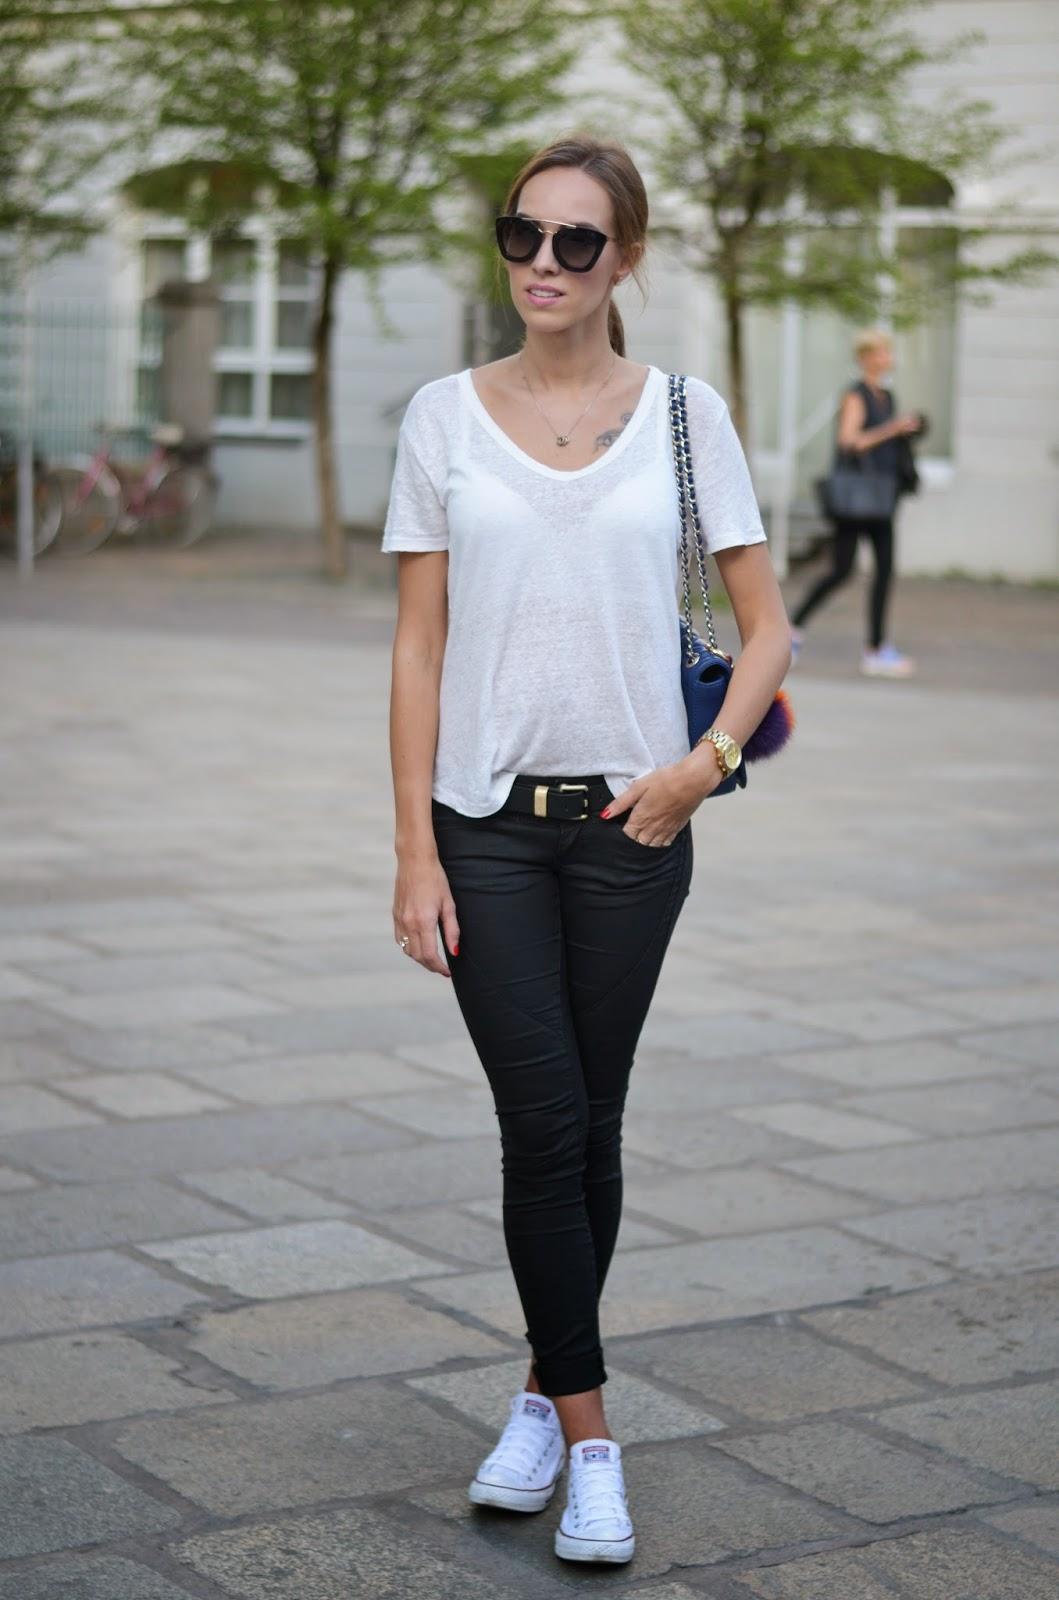 kristjaana mere casual spring outfit street style